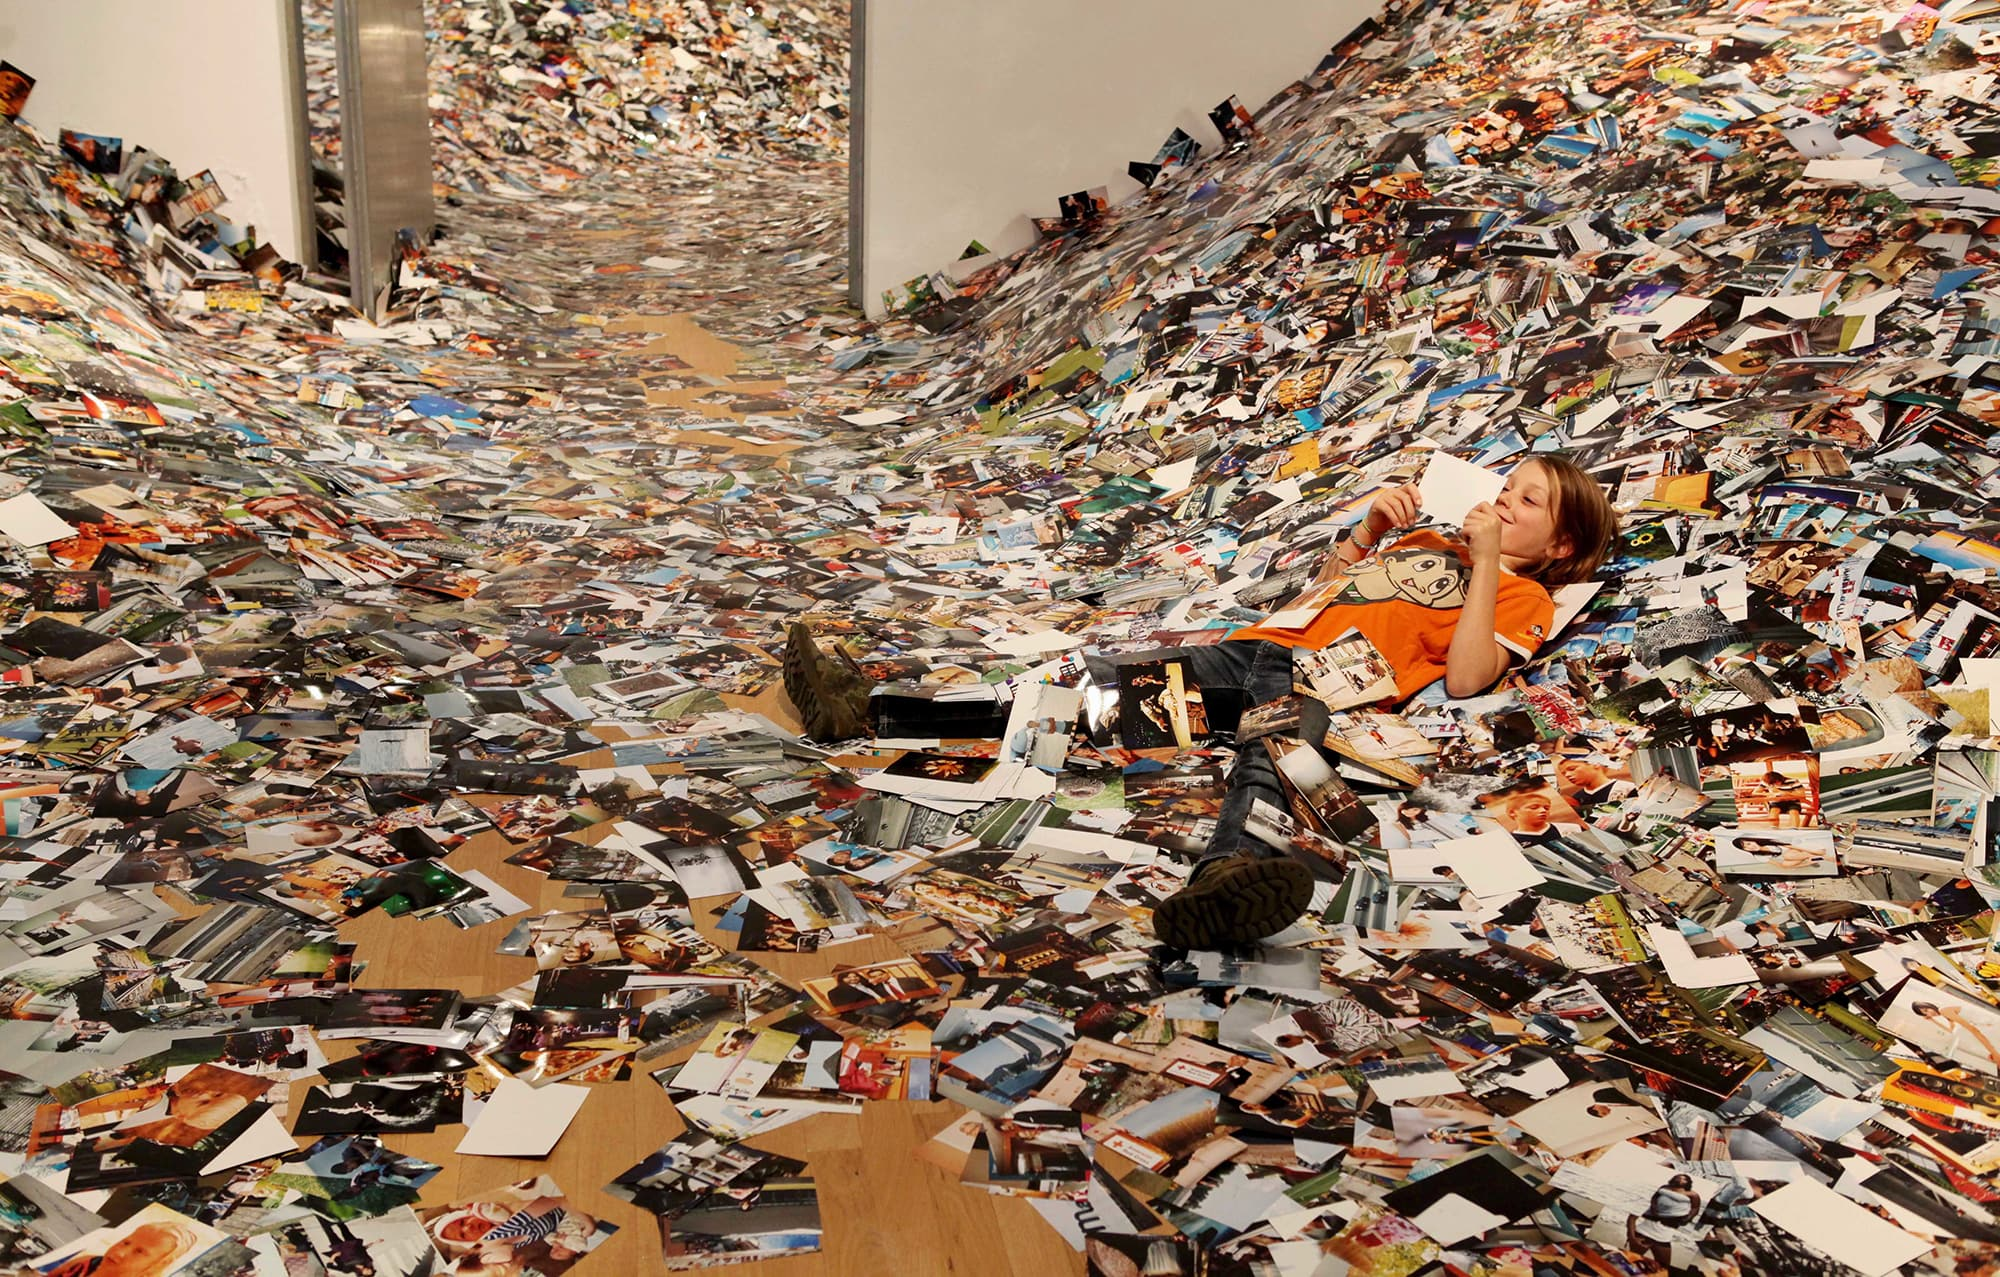 Erik Kessels: 24hrs Of Photos © Erik Kessels